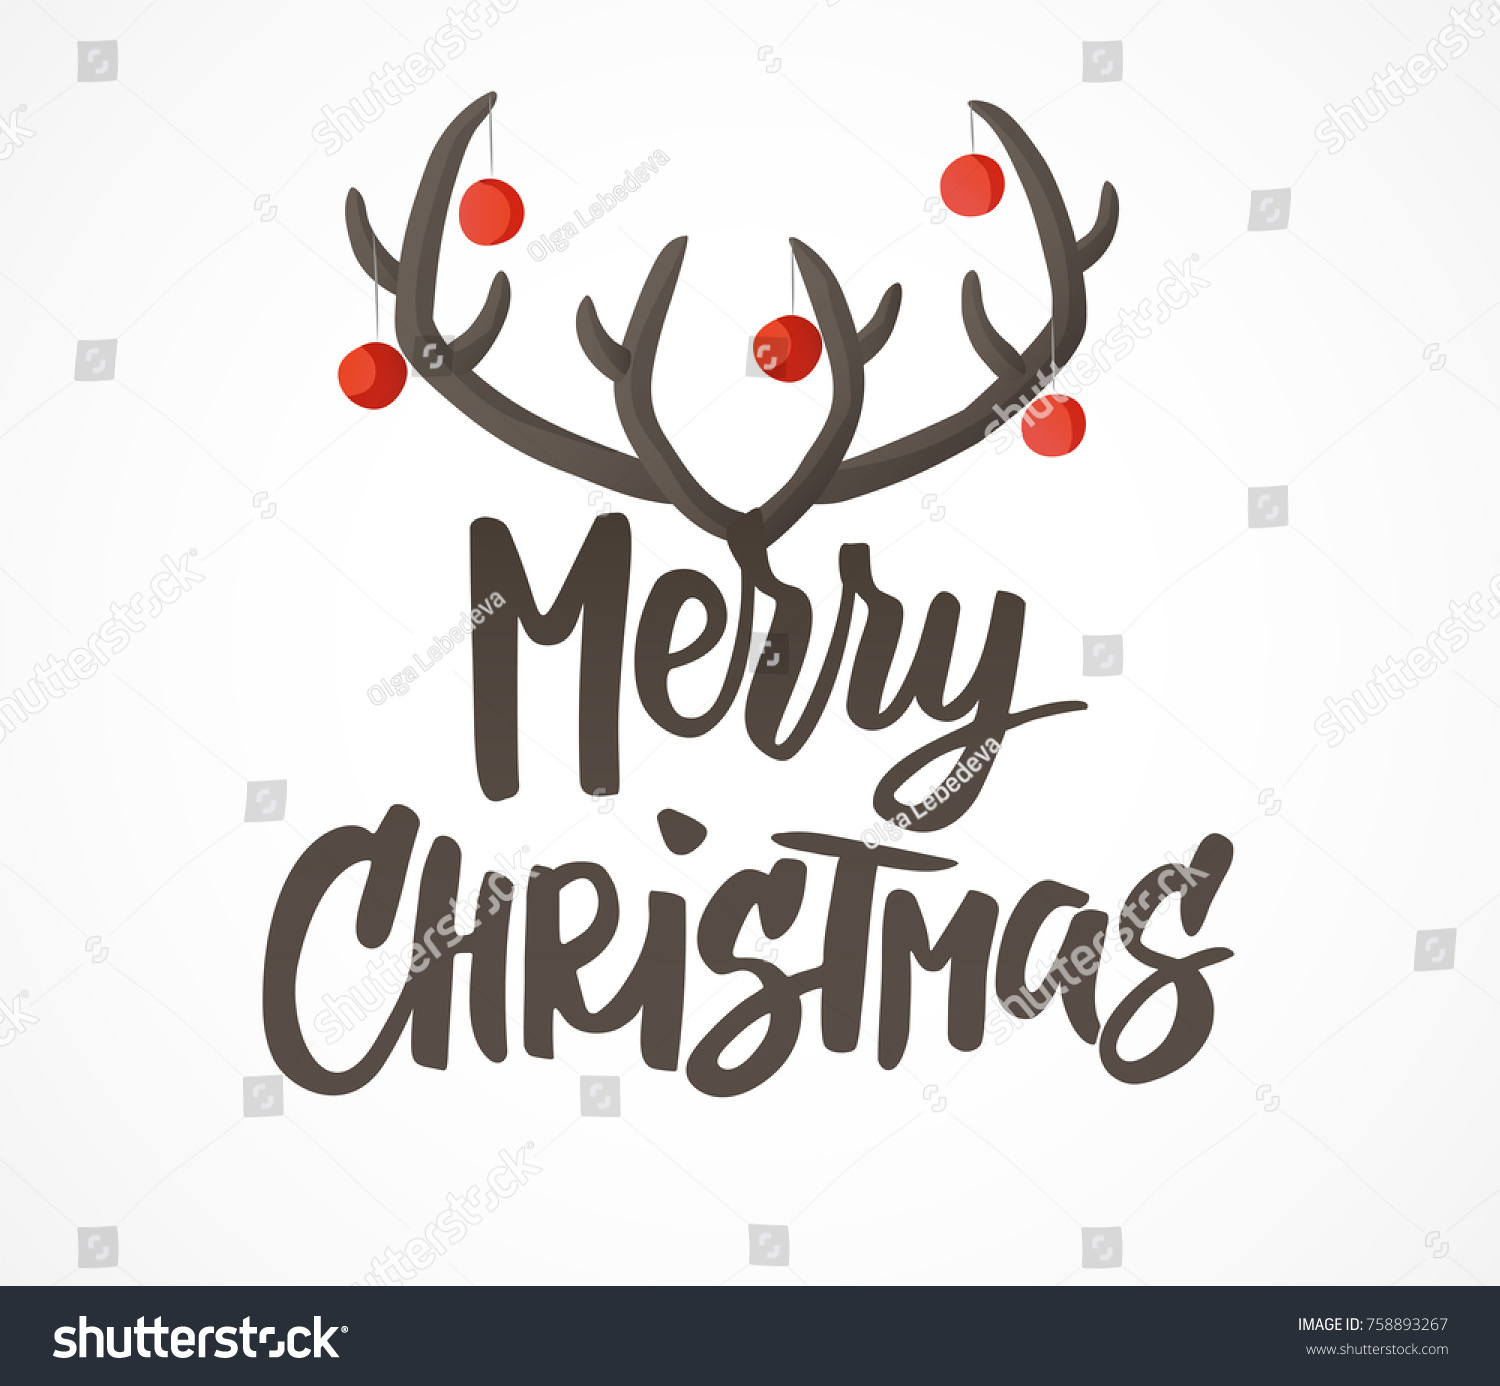 merry christmas card design hand drawn stock vector reindeer antlers and ears clipart reindeer antlers with lights clipart